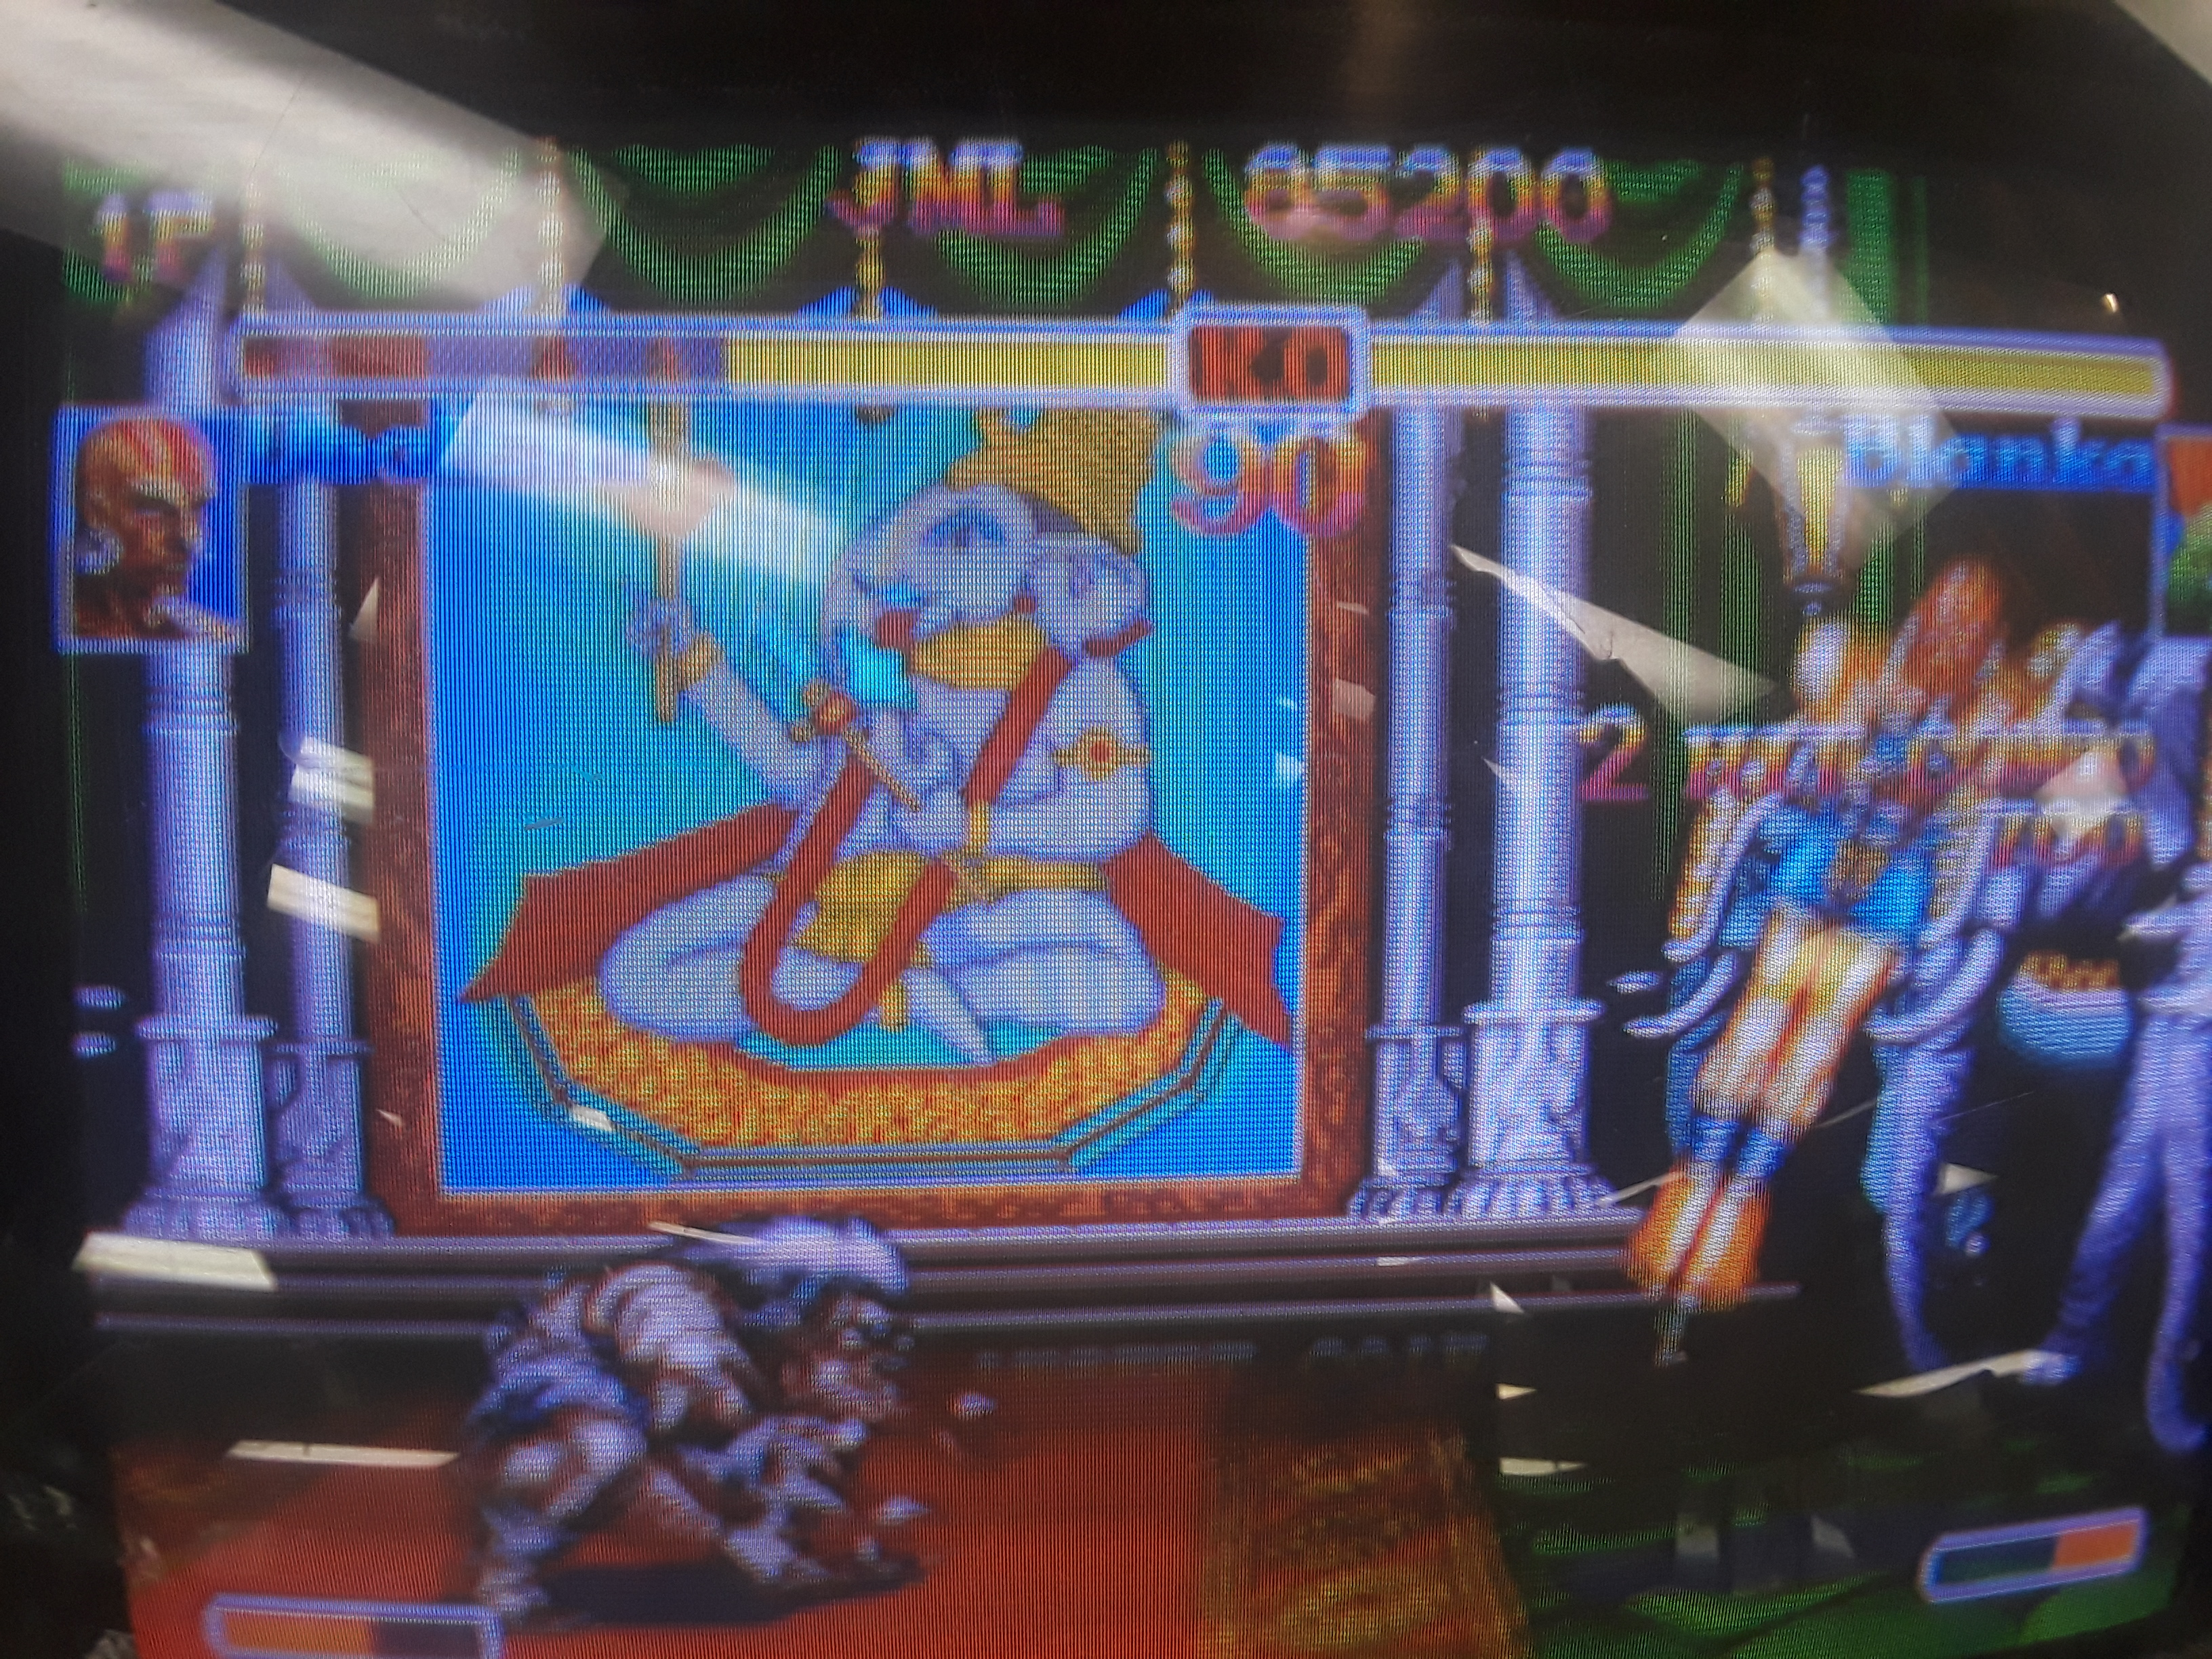 Super Street Fighter II Turbo 85,200 points